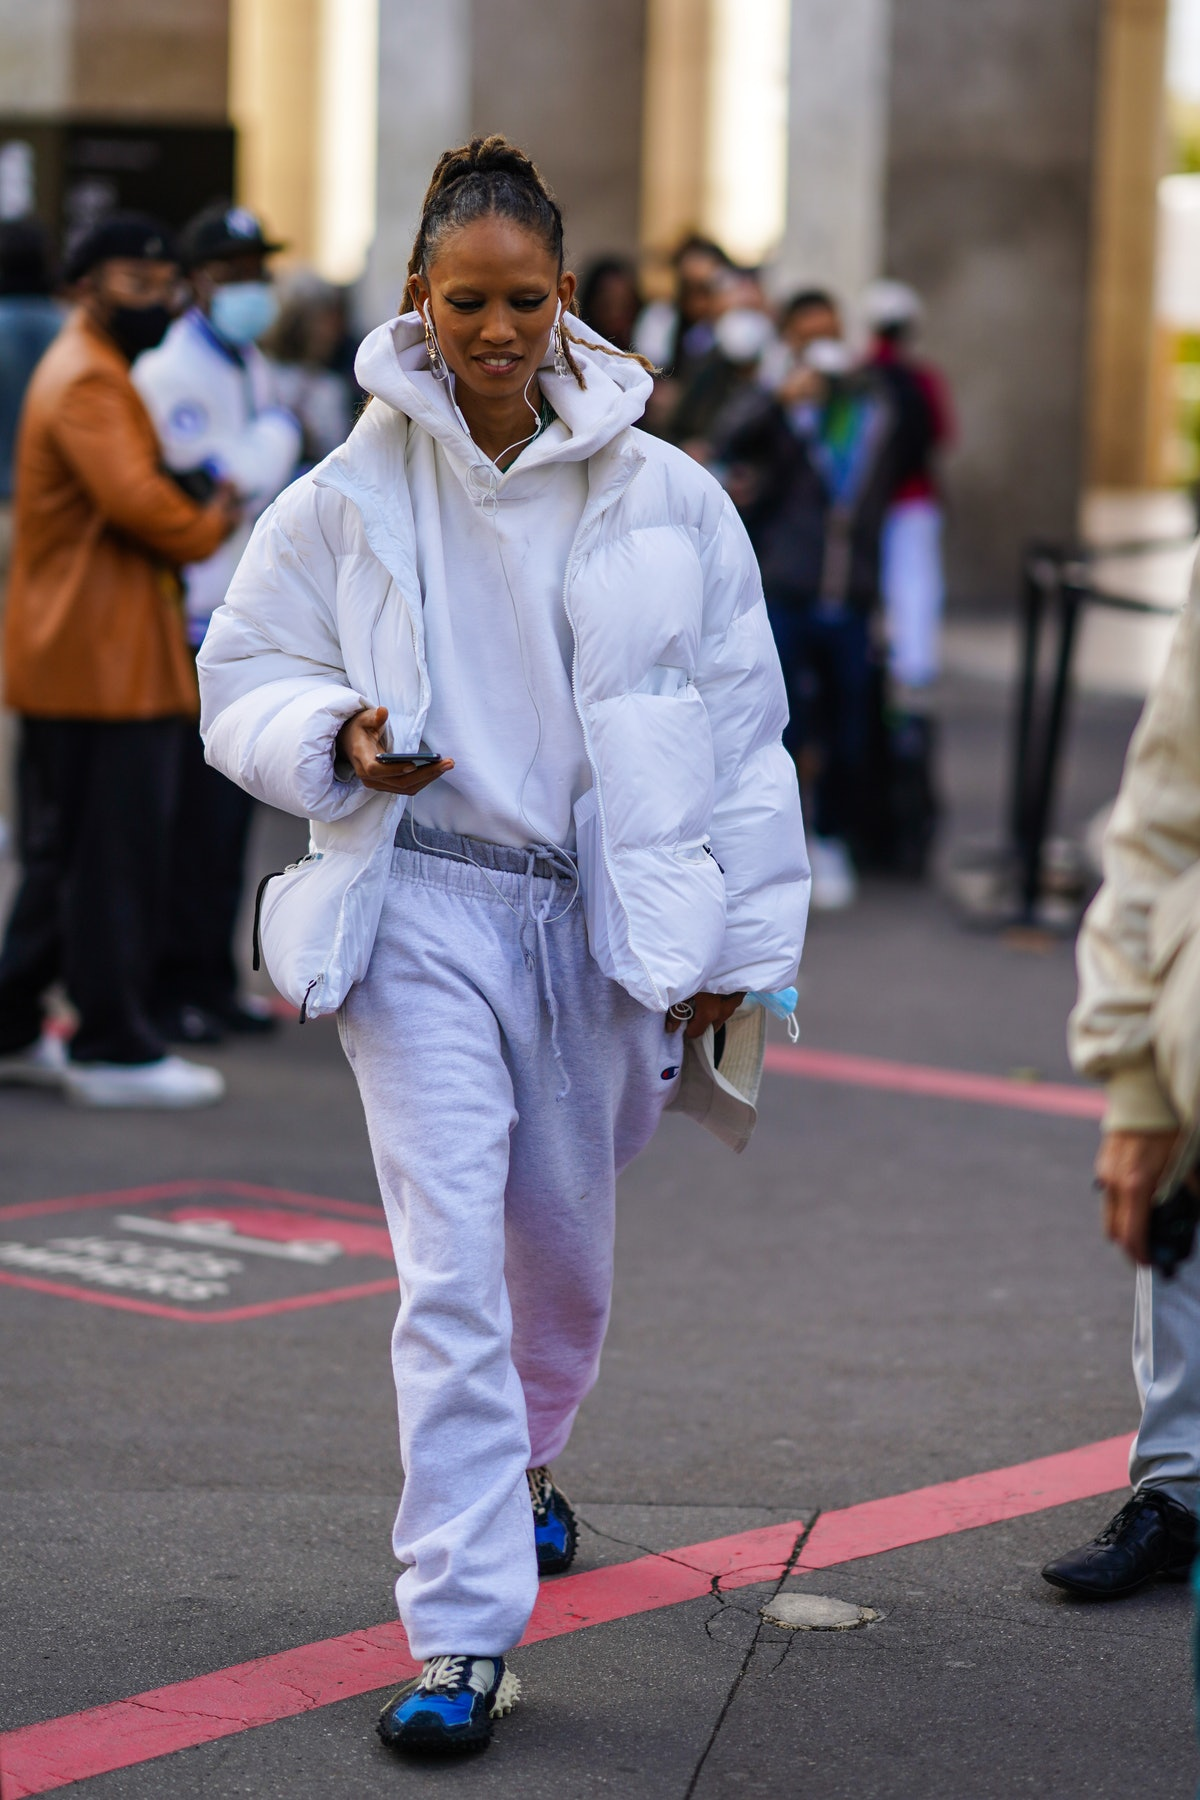 PARIS, FRANCE - OCTOBER 01: A guest wears earrings, a white hooded sweatshirt, a white puffer jacket, light blue sport pants with drawstring, blue and black sneakers, outside Chloe, during Paris Fashion Week - Womenswear Spring Summer 2021, on October 01, 2020 in Paris, France. (Photo by Edward Berthelot/Getty Images)